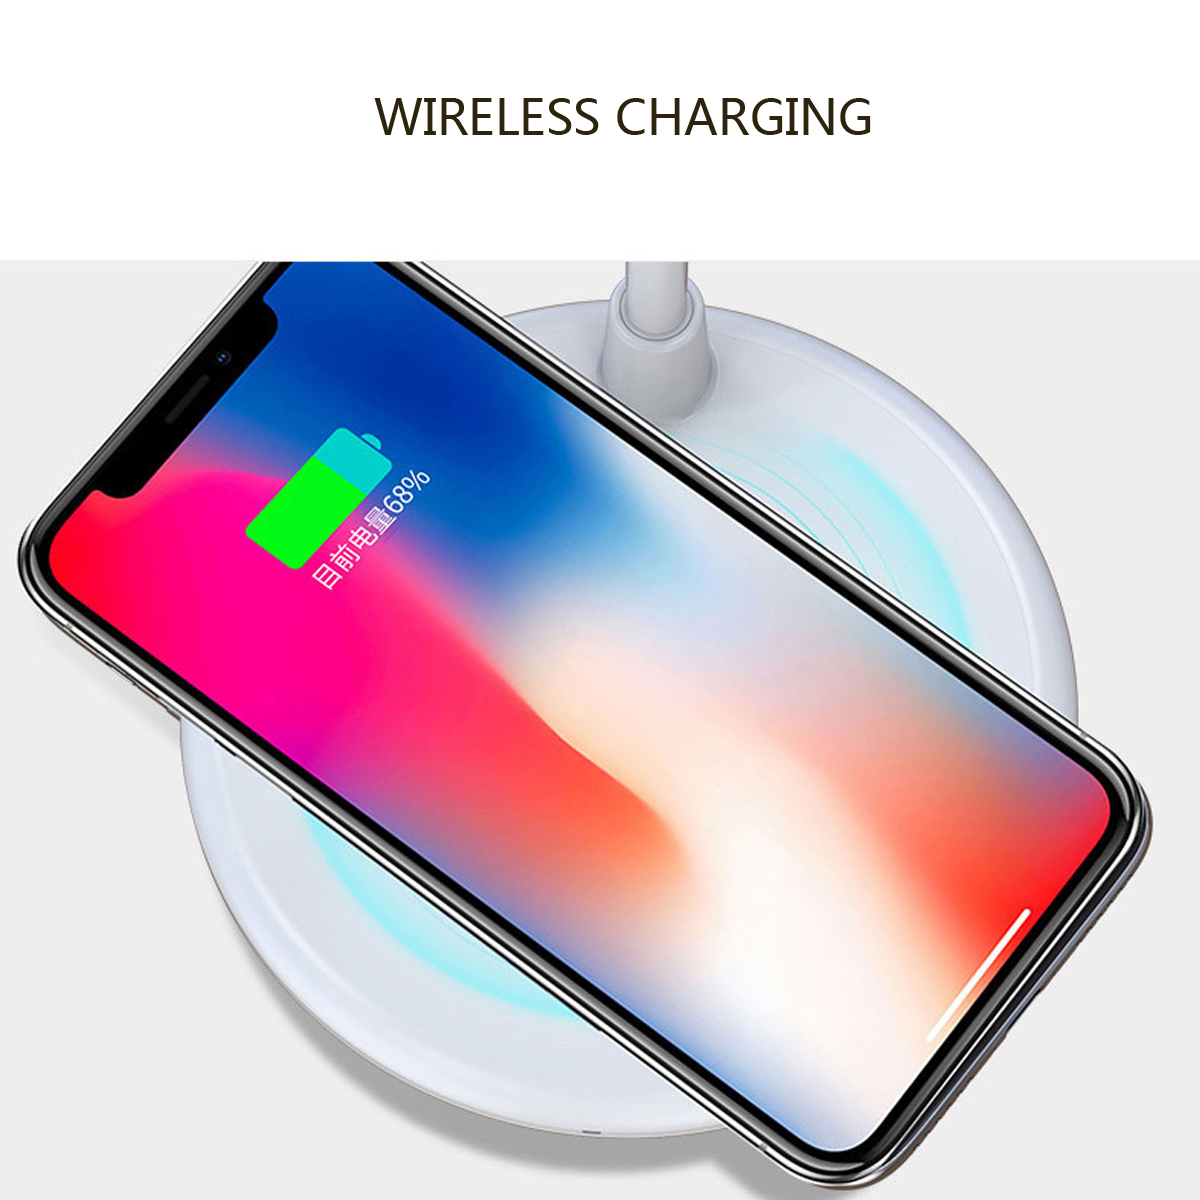 3 In 1 Qi Wireless Charger+LED Lamp+Bluetooth Speaker For iPhone Samsung Huawei Xiaomi LG